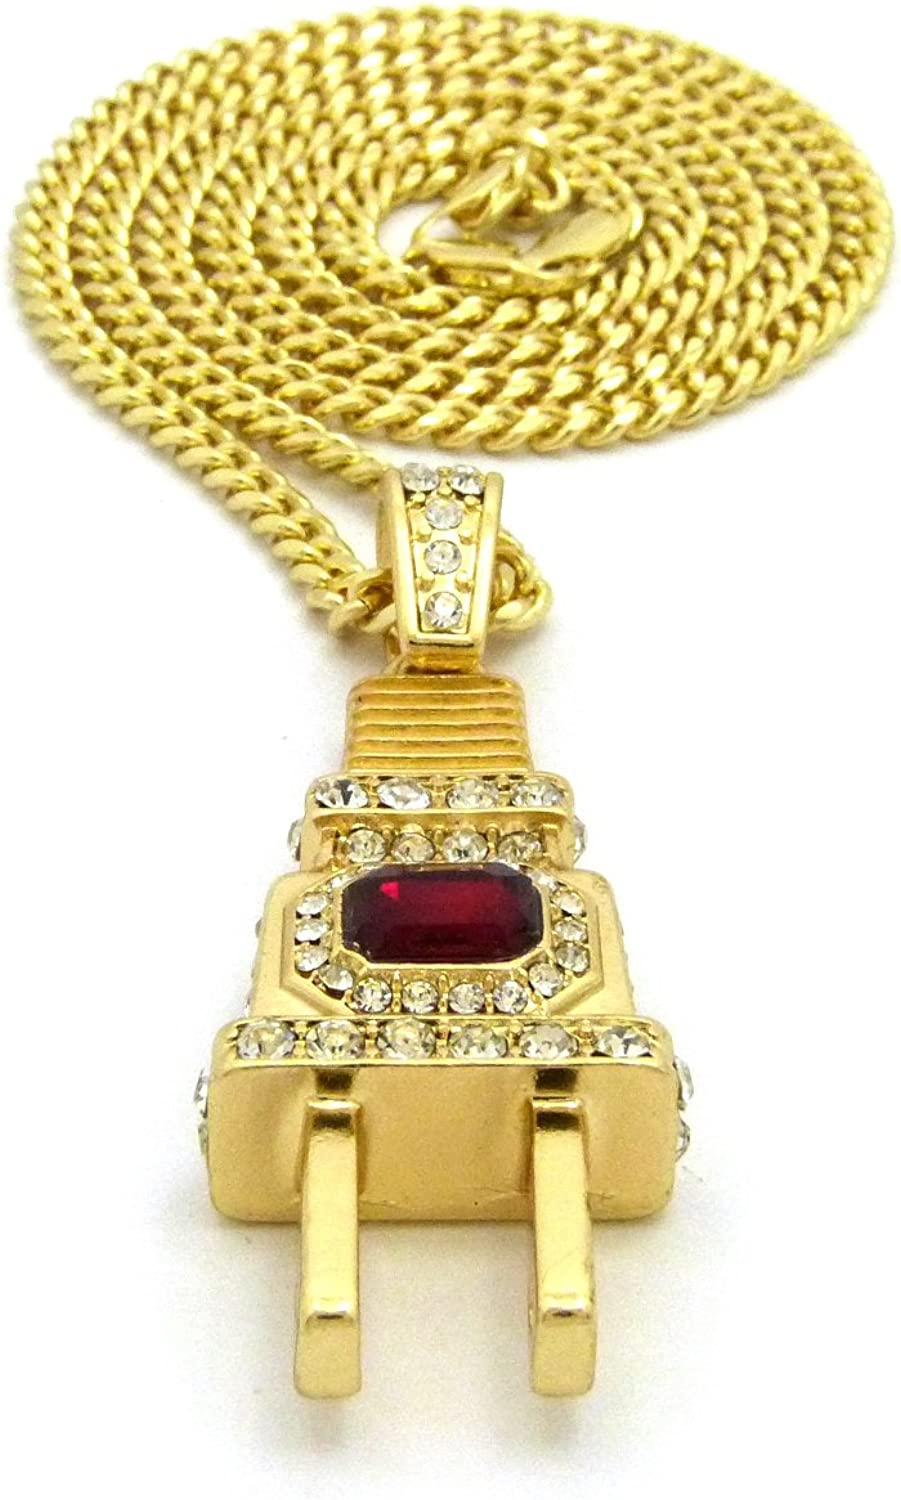 NEW ICED OUT ELECTRIC PLUG PENDANT /&24 CUBAN CHAIN HIP HOP NECKLACE XQP63GRD